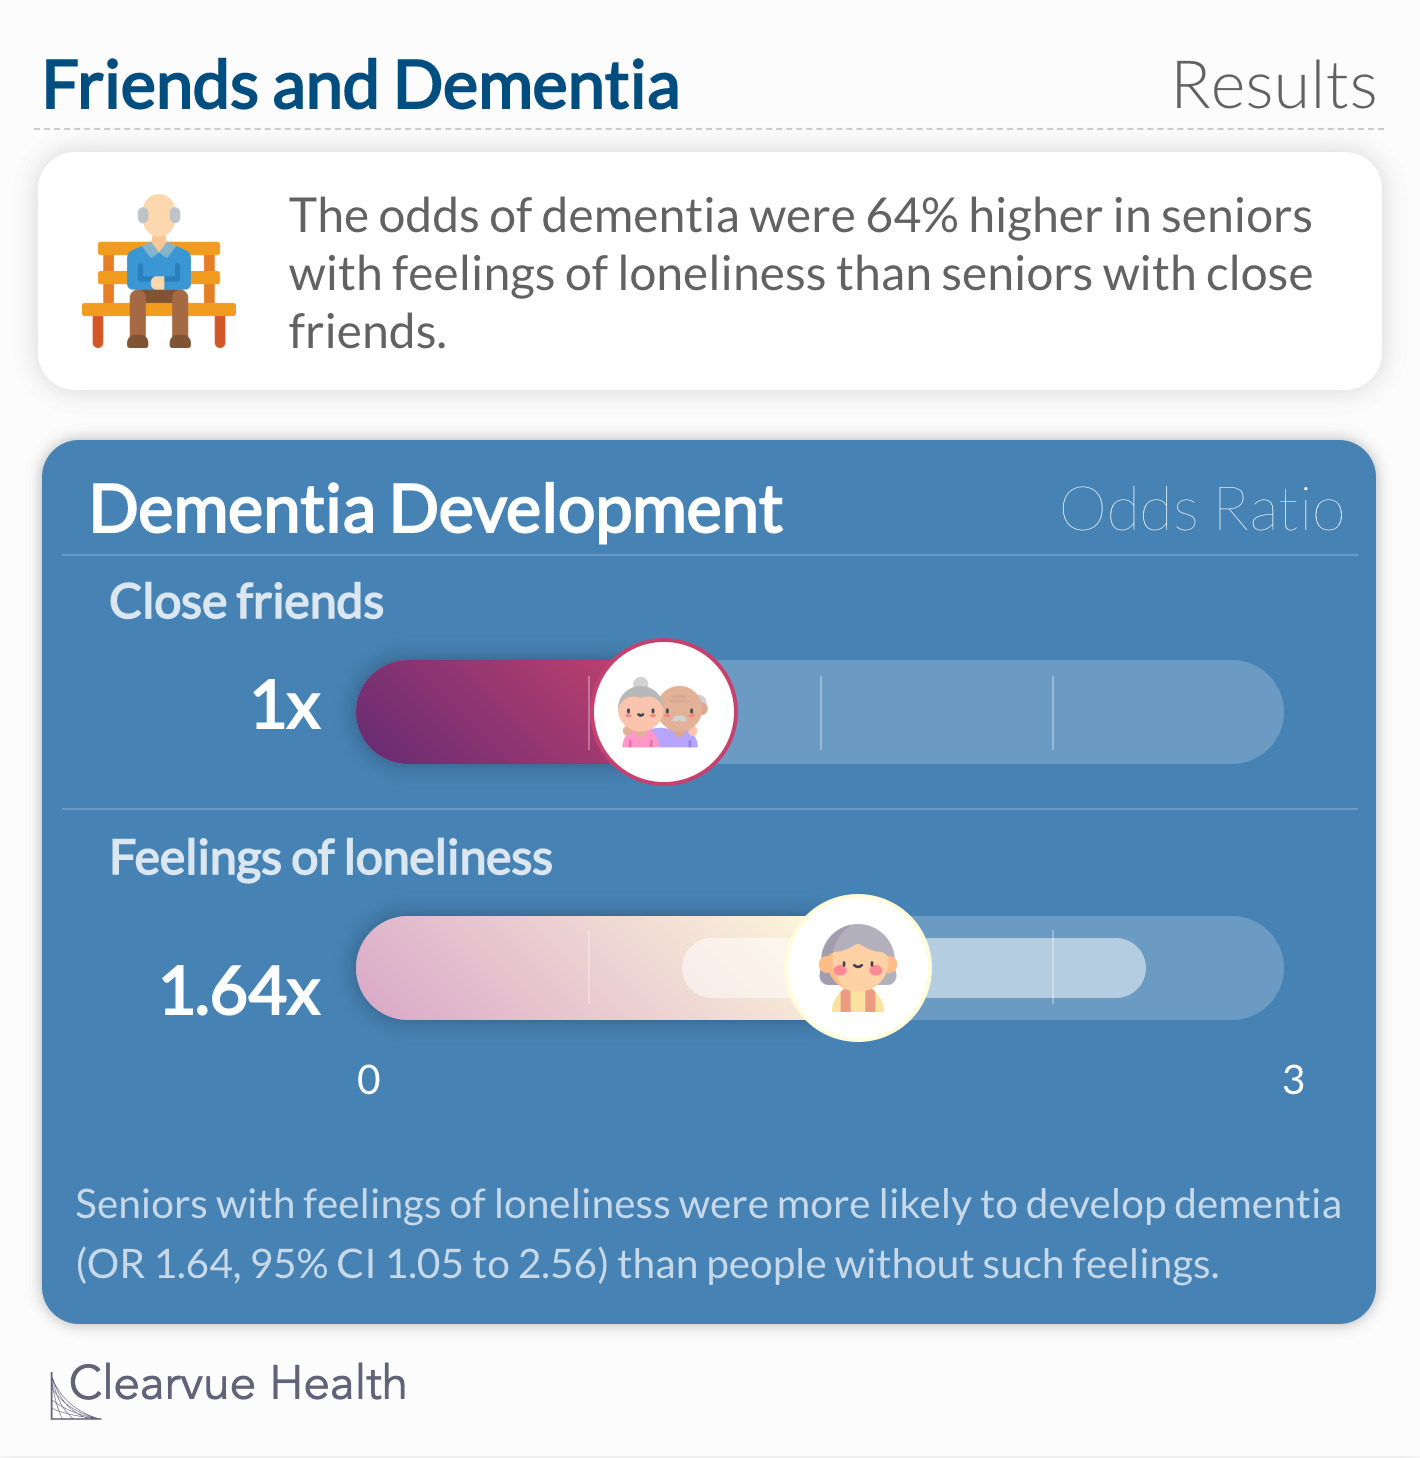 The odds of dementia were 64% higher in seniors with feelings of loneliness than other seniors.